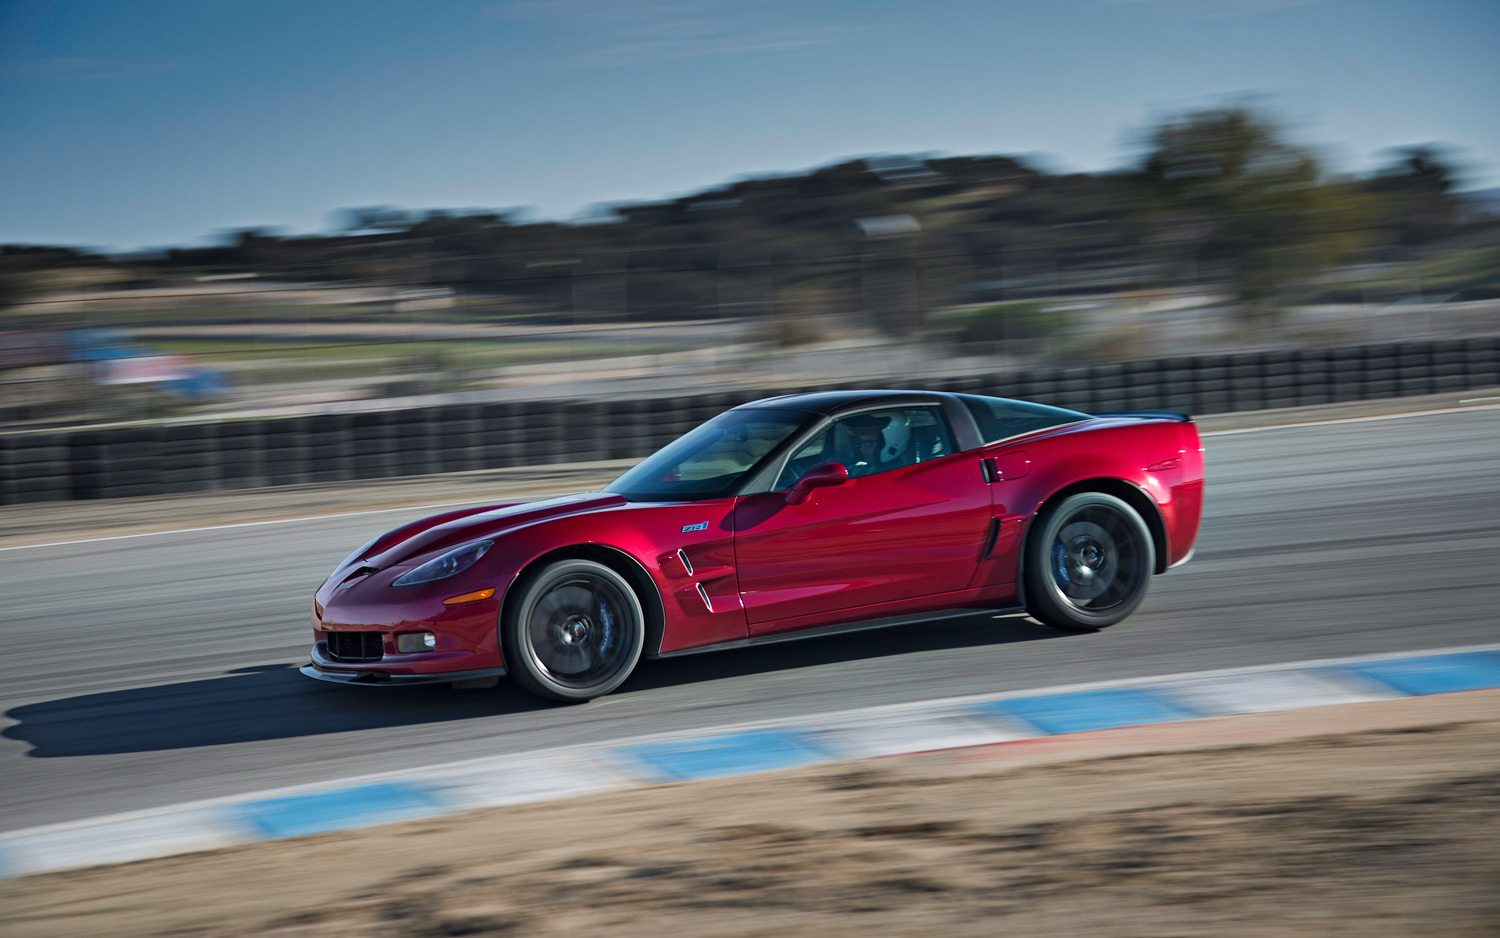 2013 C6 Chevrolet Corvette ZR1